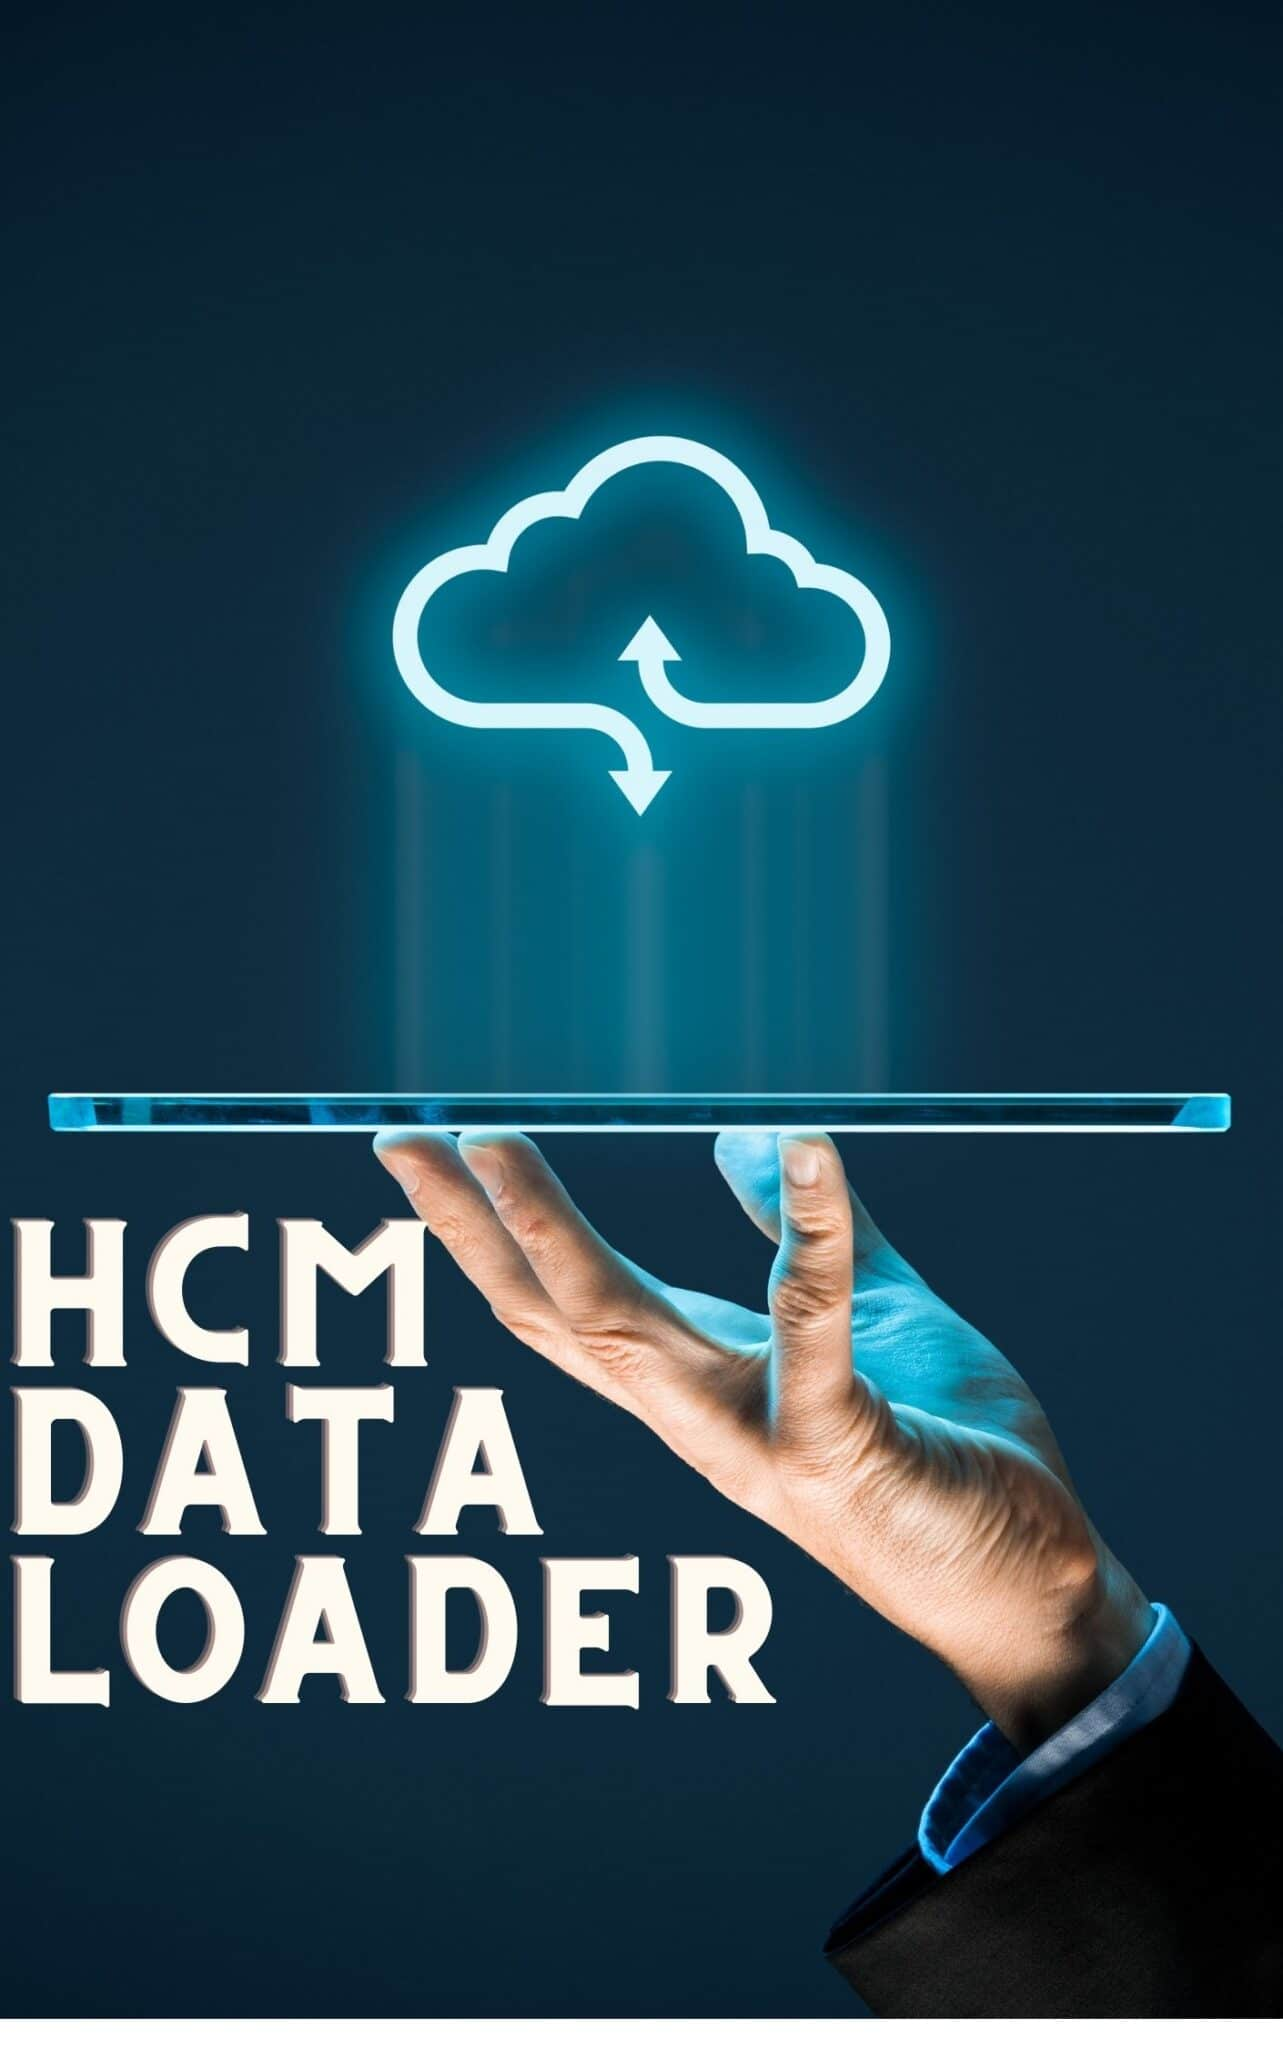 HCM DATA LOADER (1)